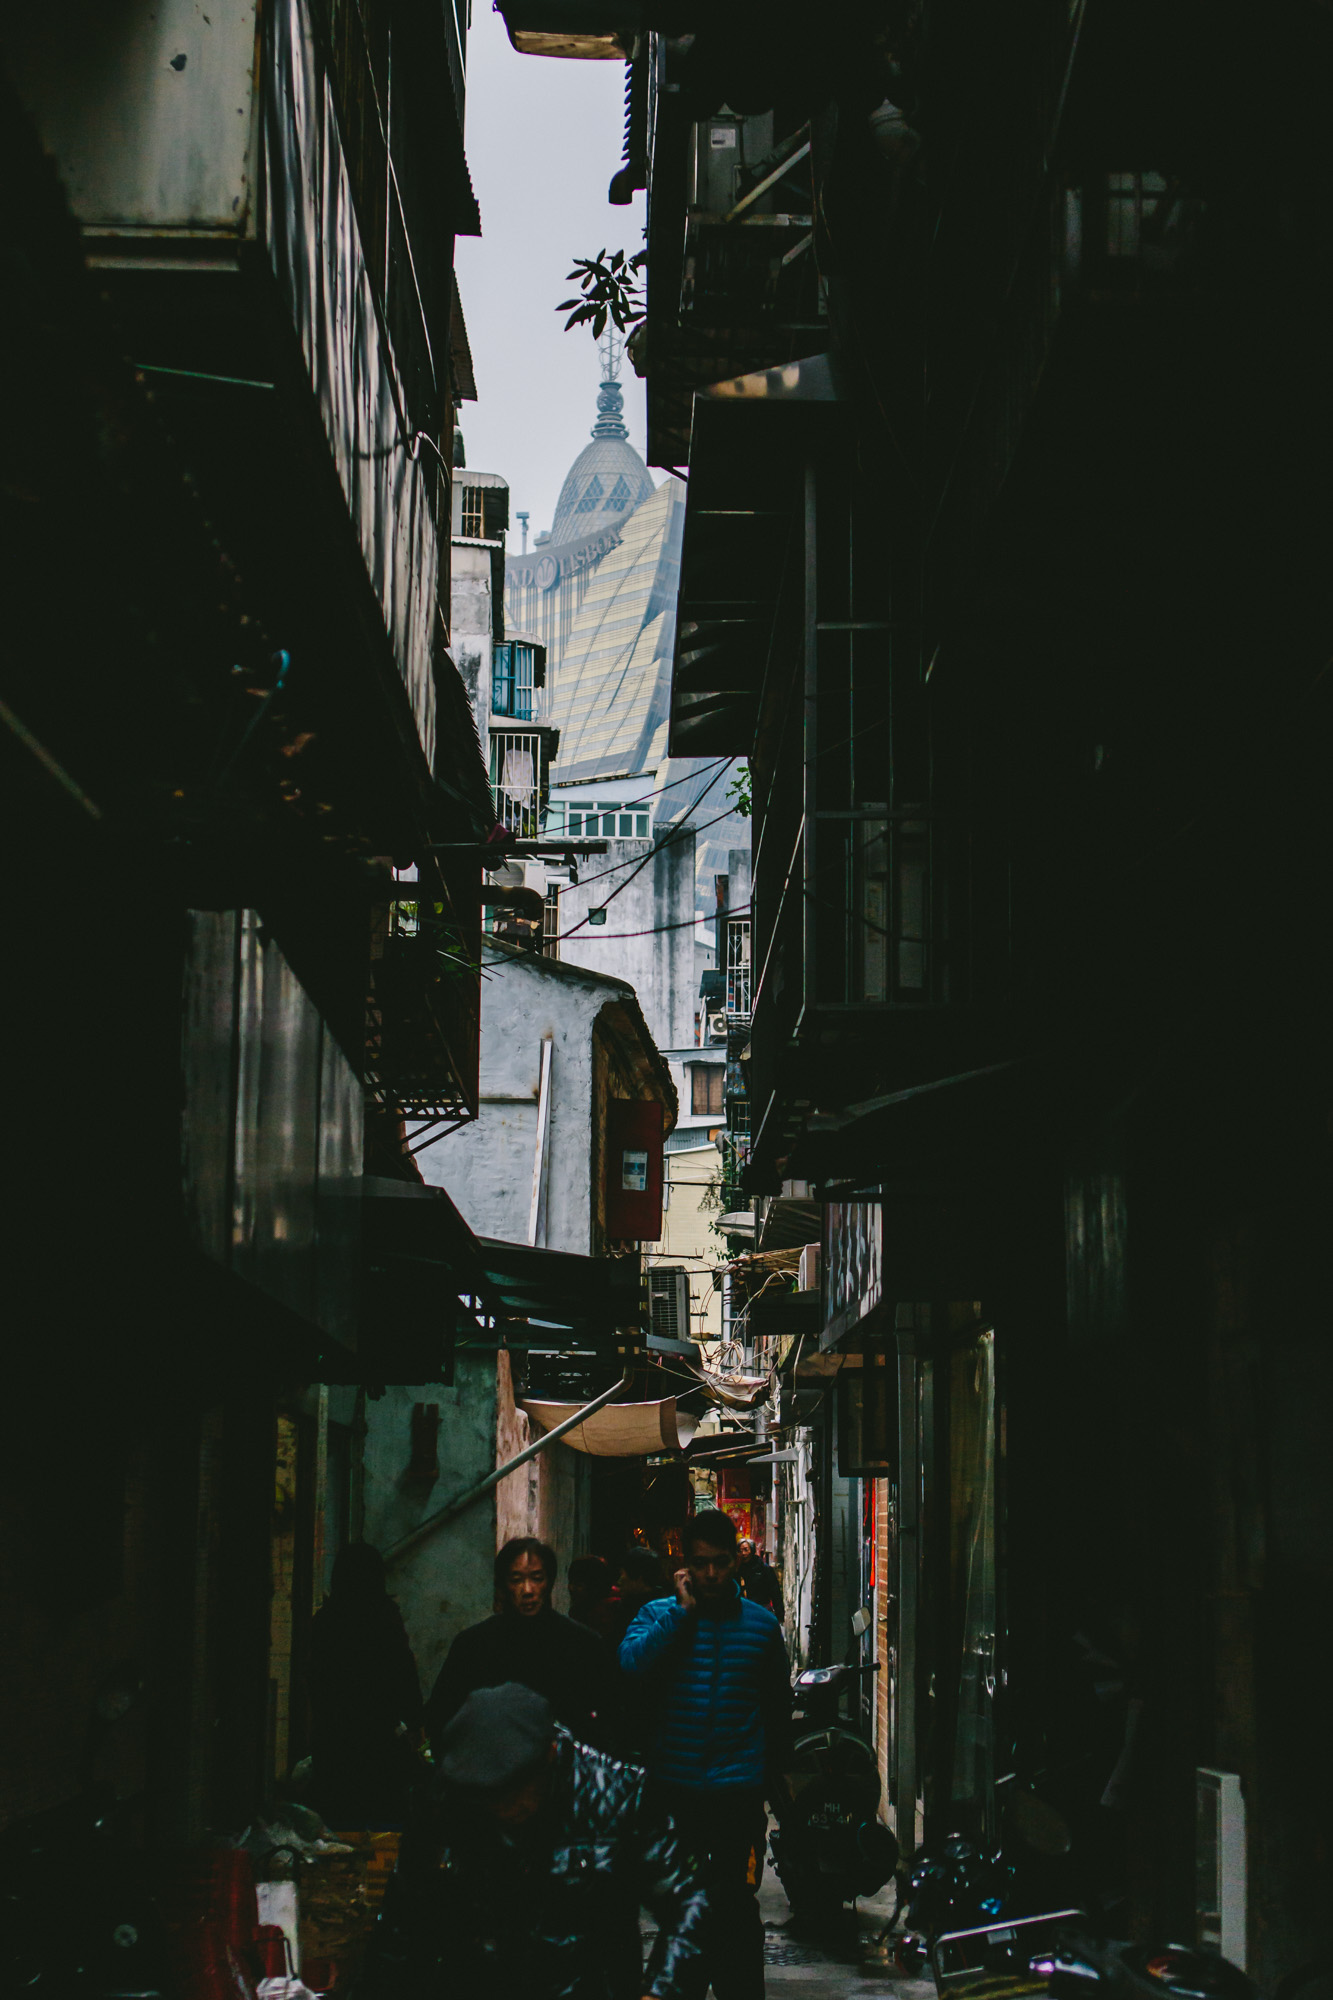 Alleyway in Macau